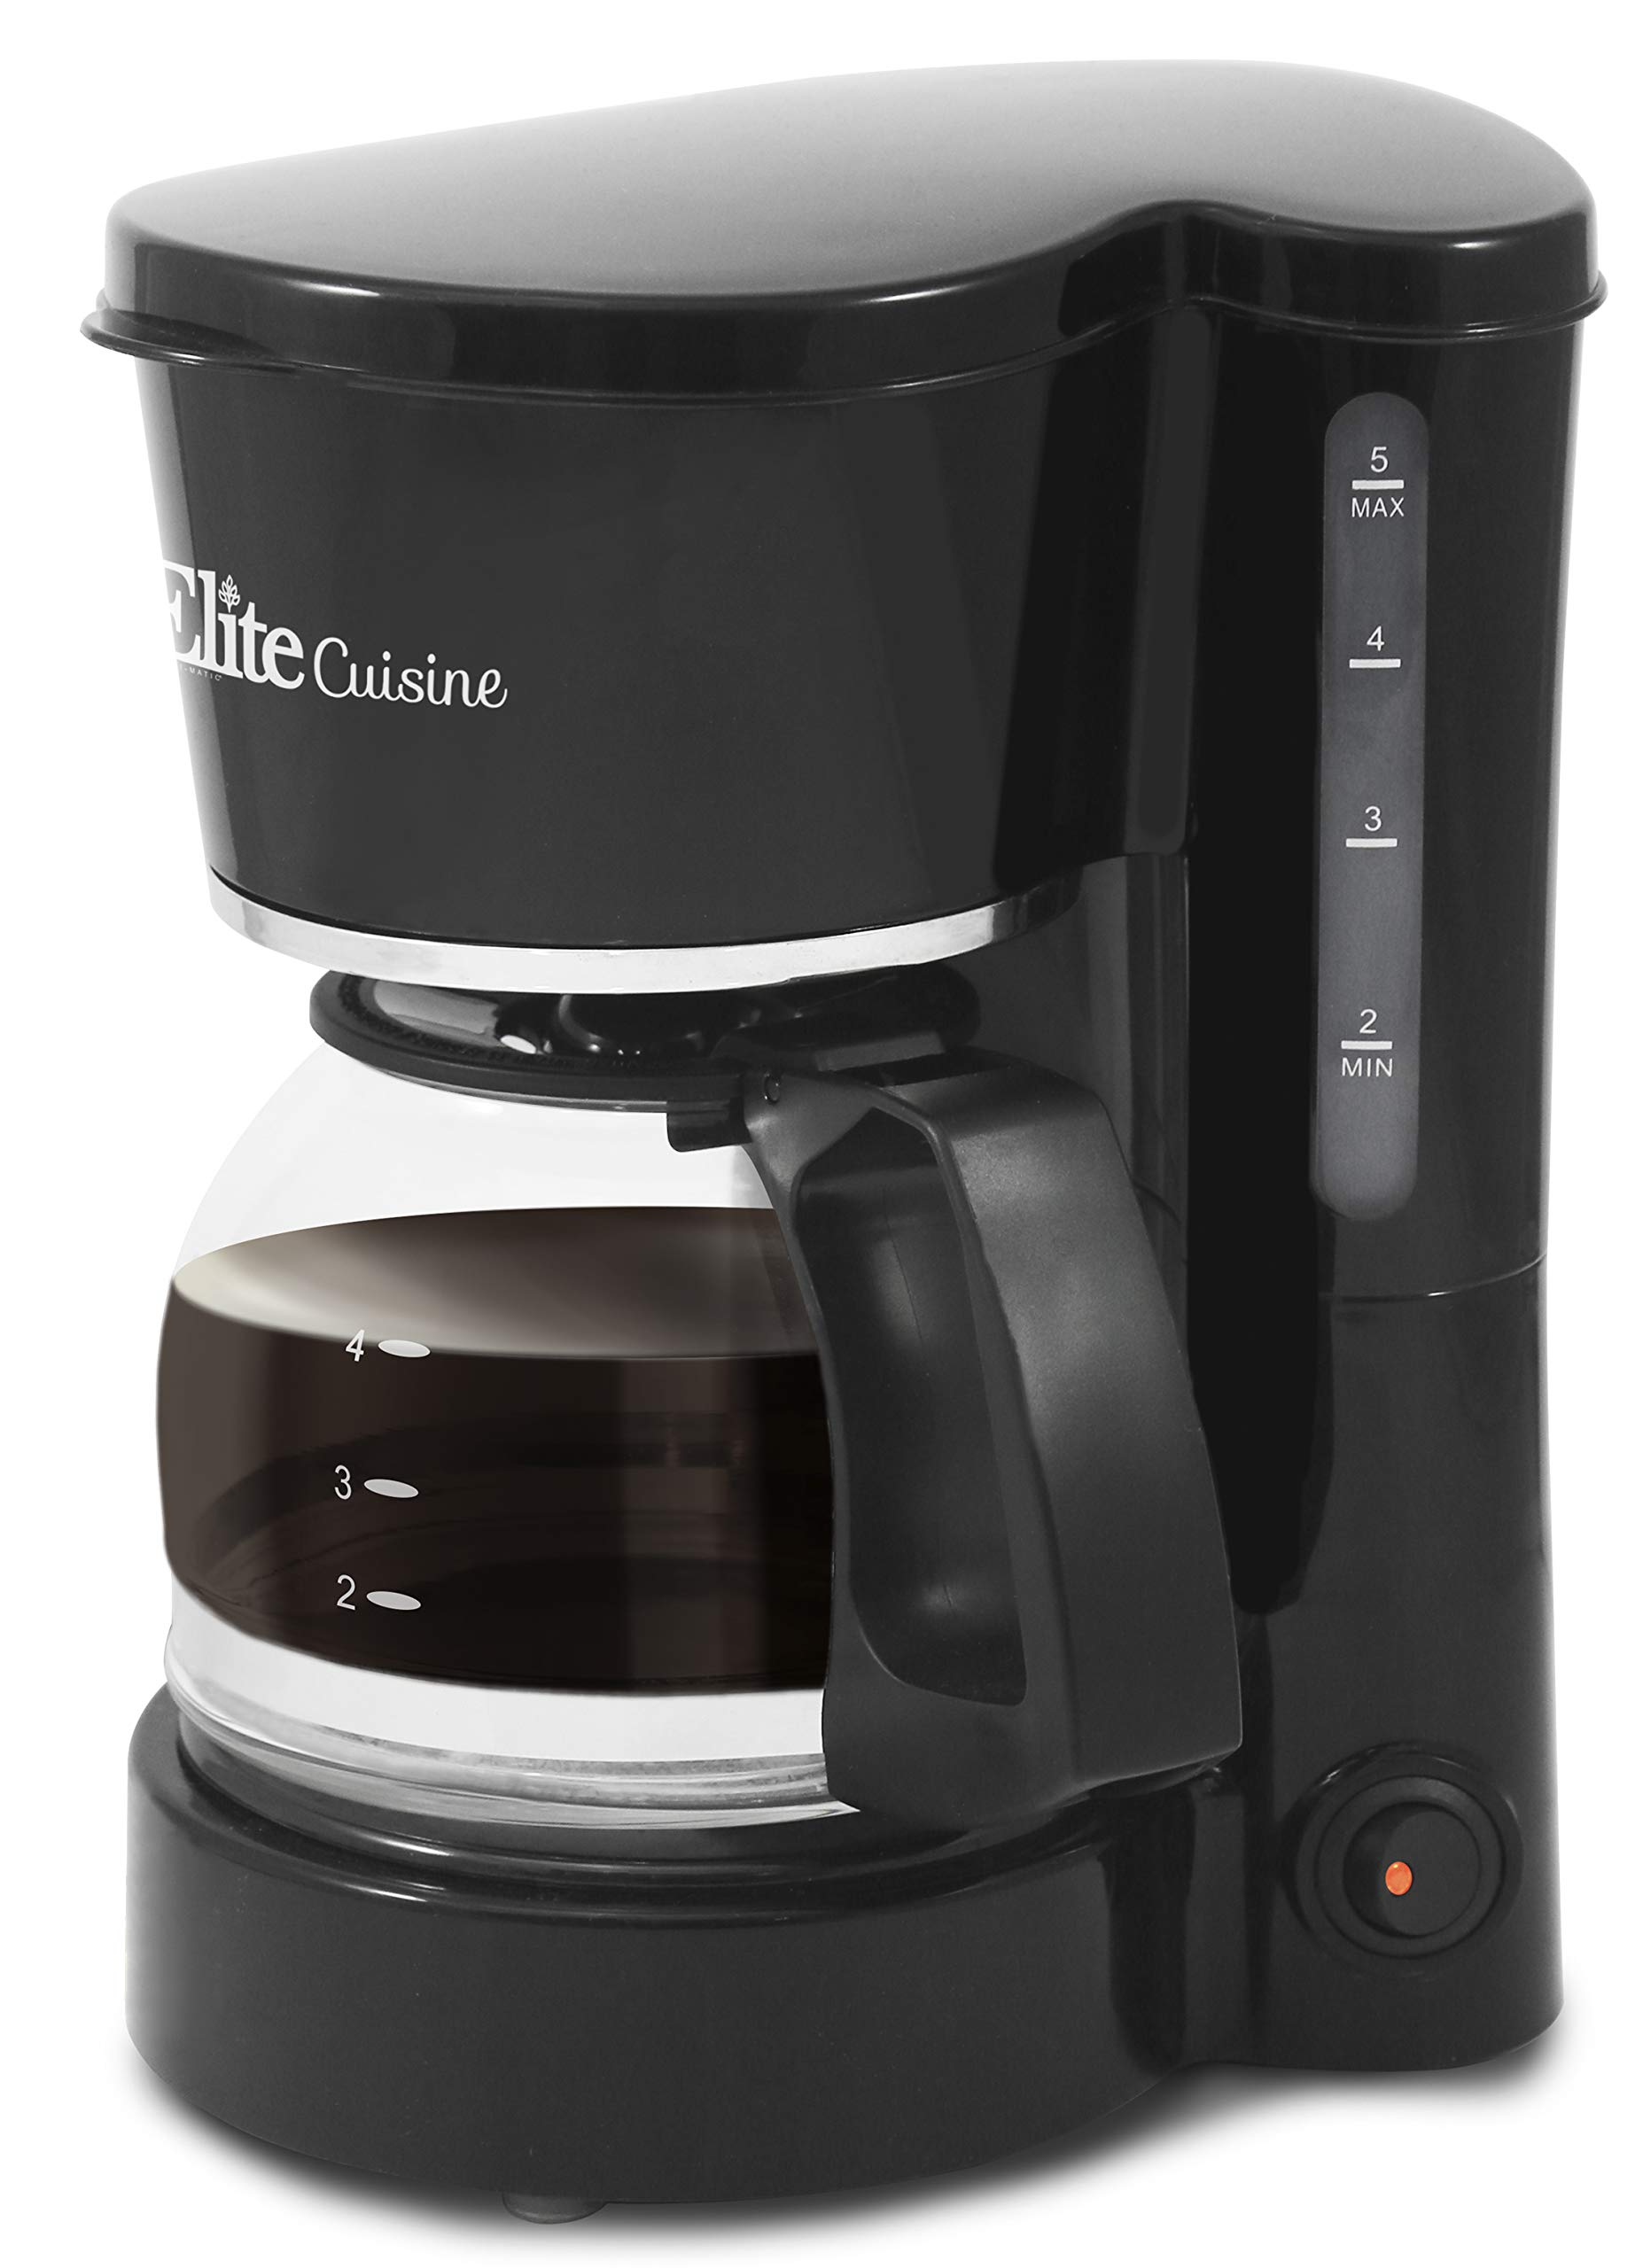 Elite Cuisine EHC-5055 Automatic Brew & Drip Coffee Maker with Pause N Serve Reusable Filter, On/Off Switch, Water Level Indicator, 5 Cup Capacity, Black by Maxi-Matic